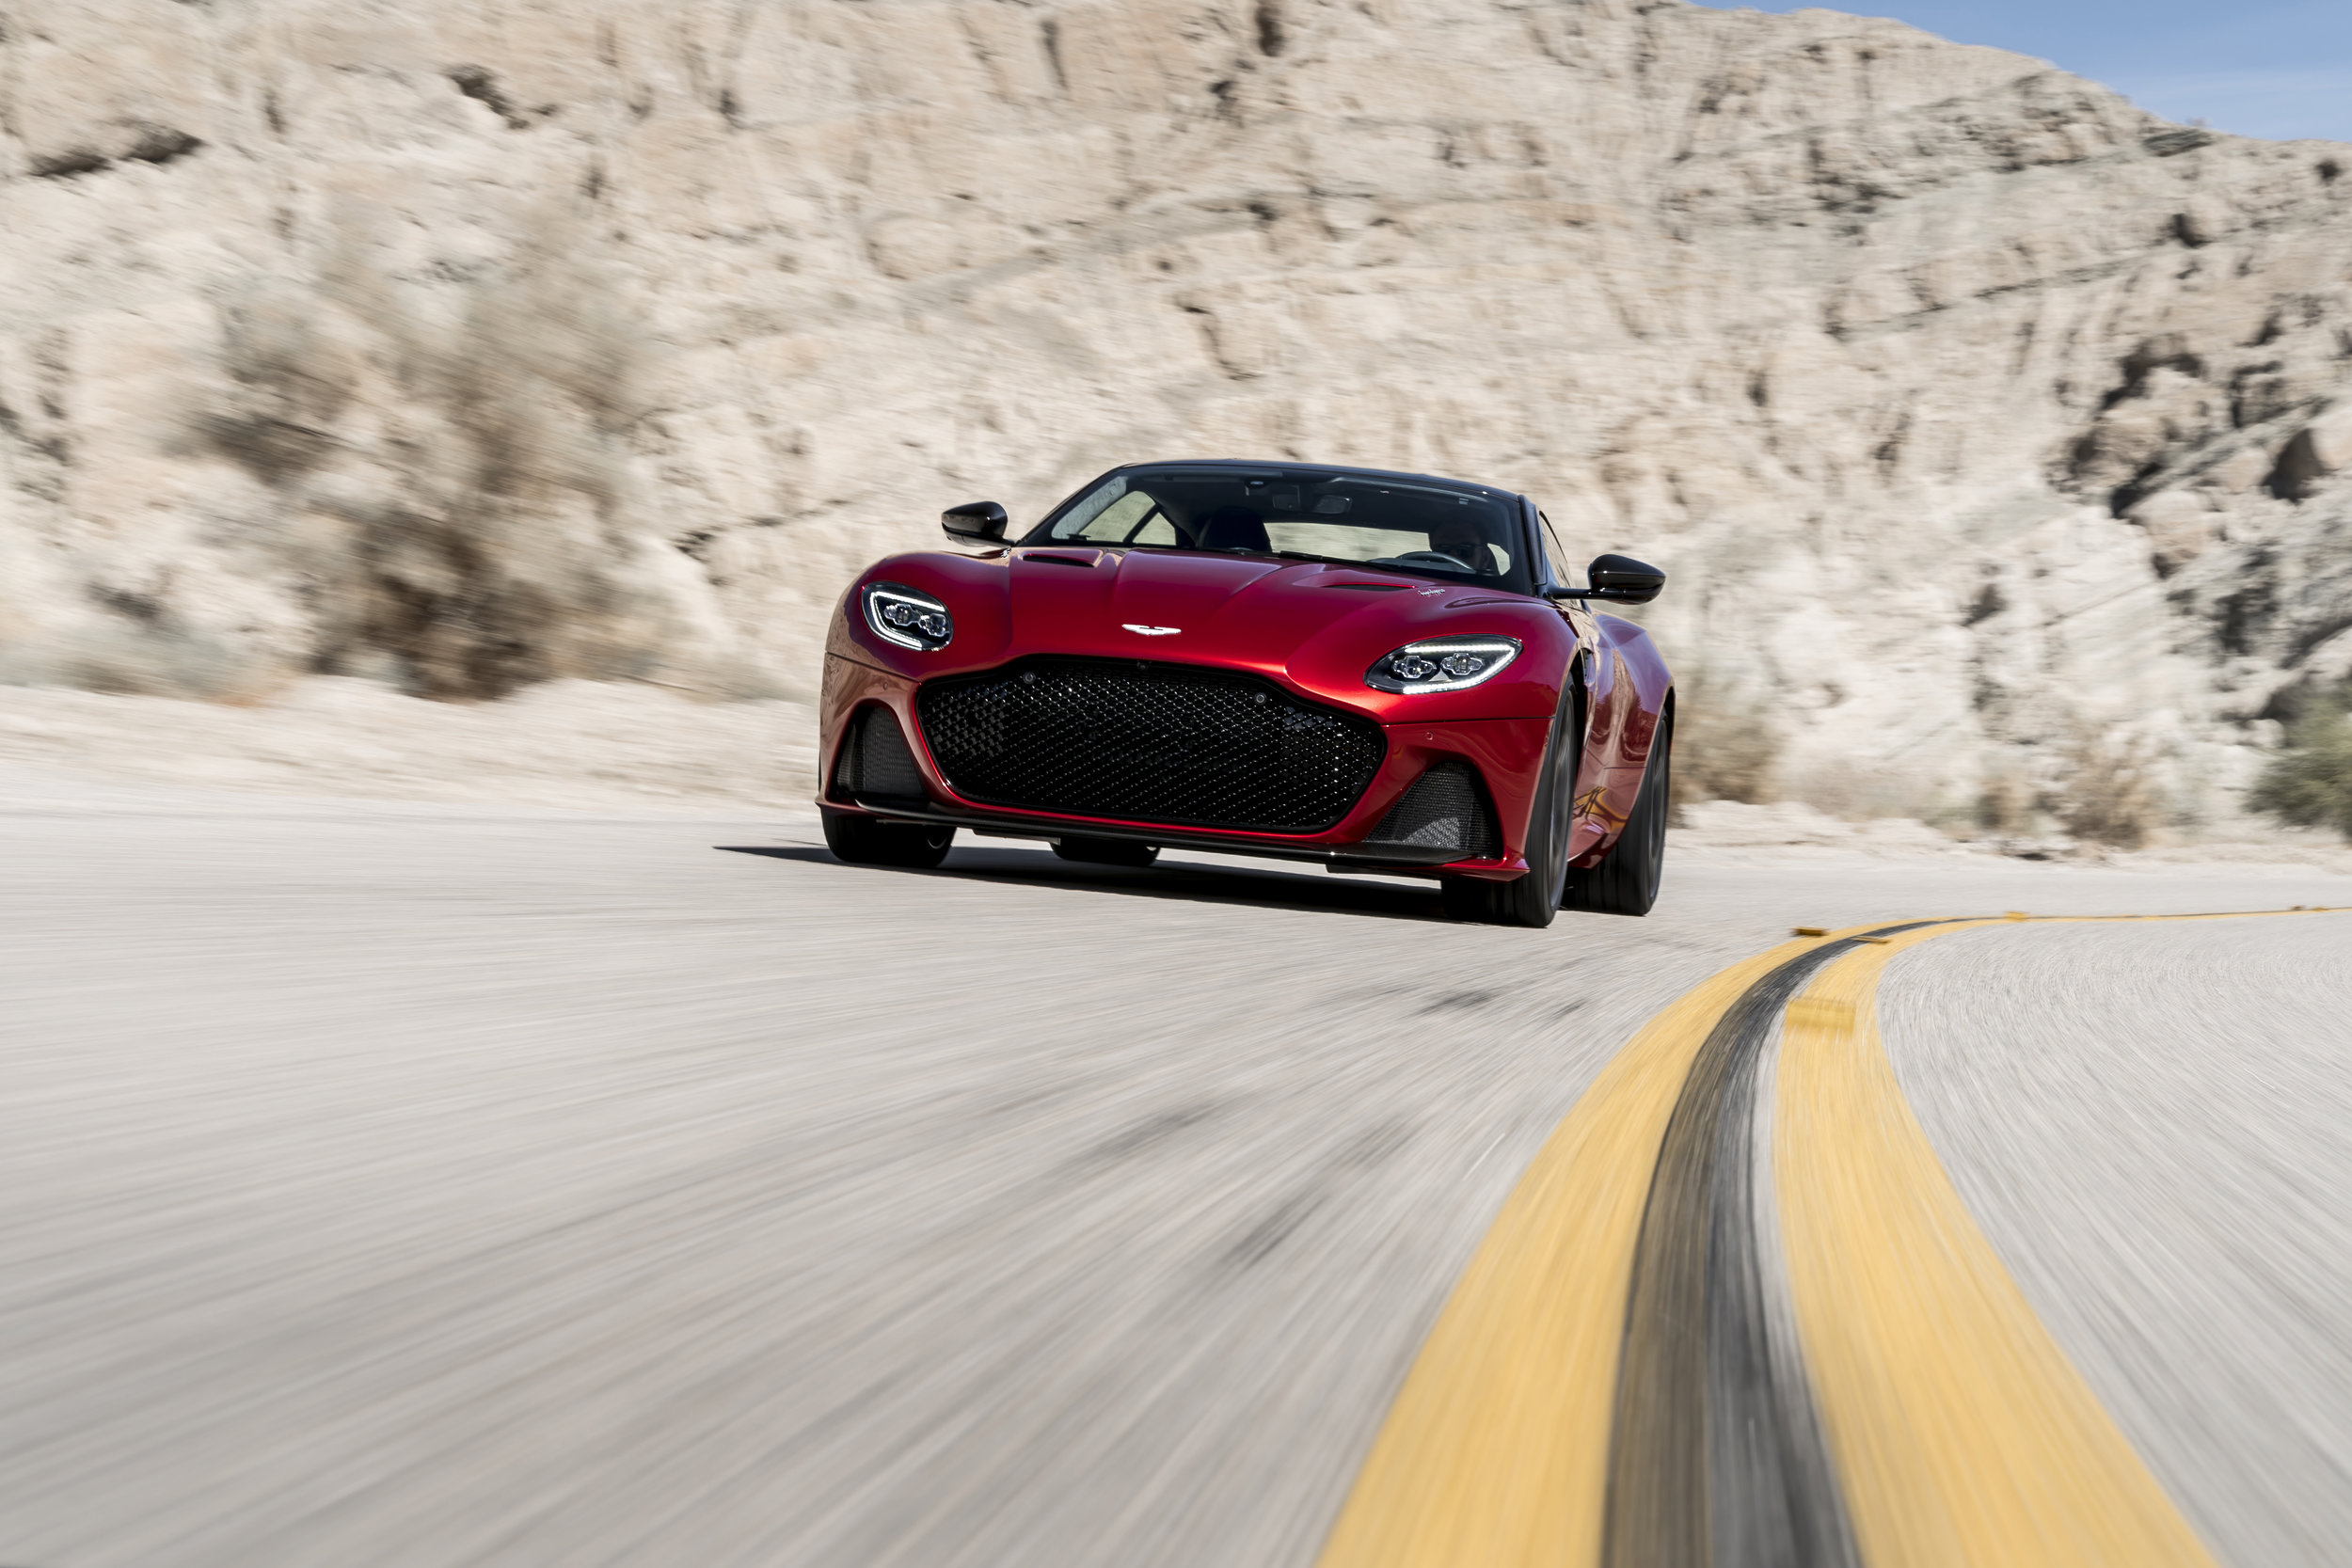 DBS_Superleggera (1).jpg